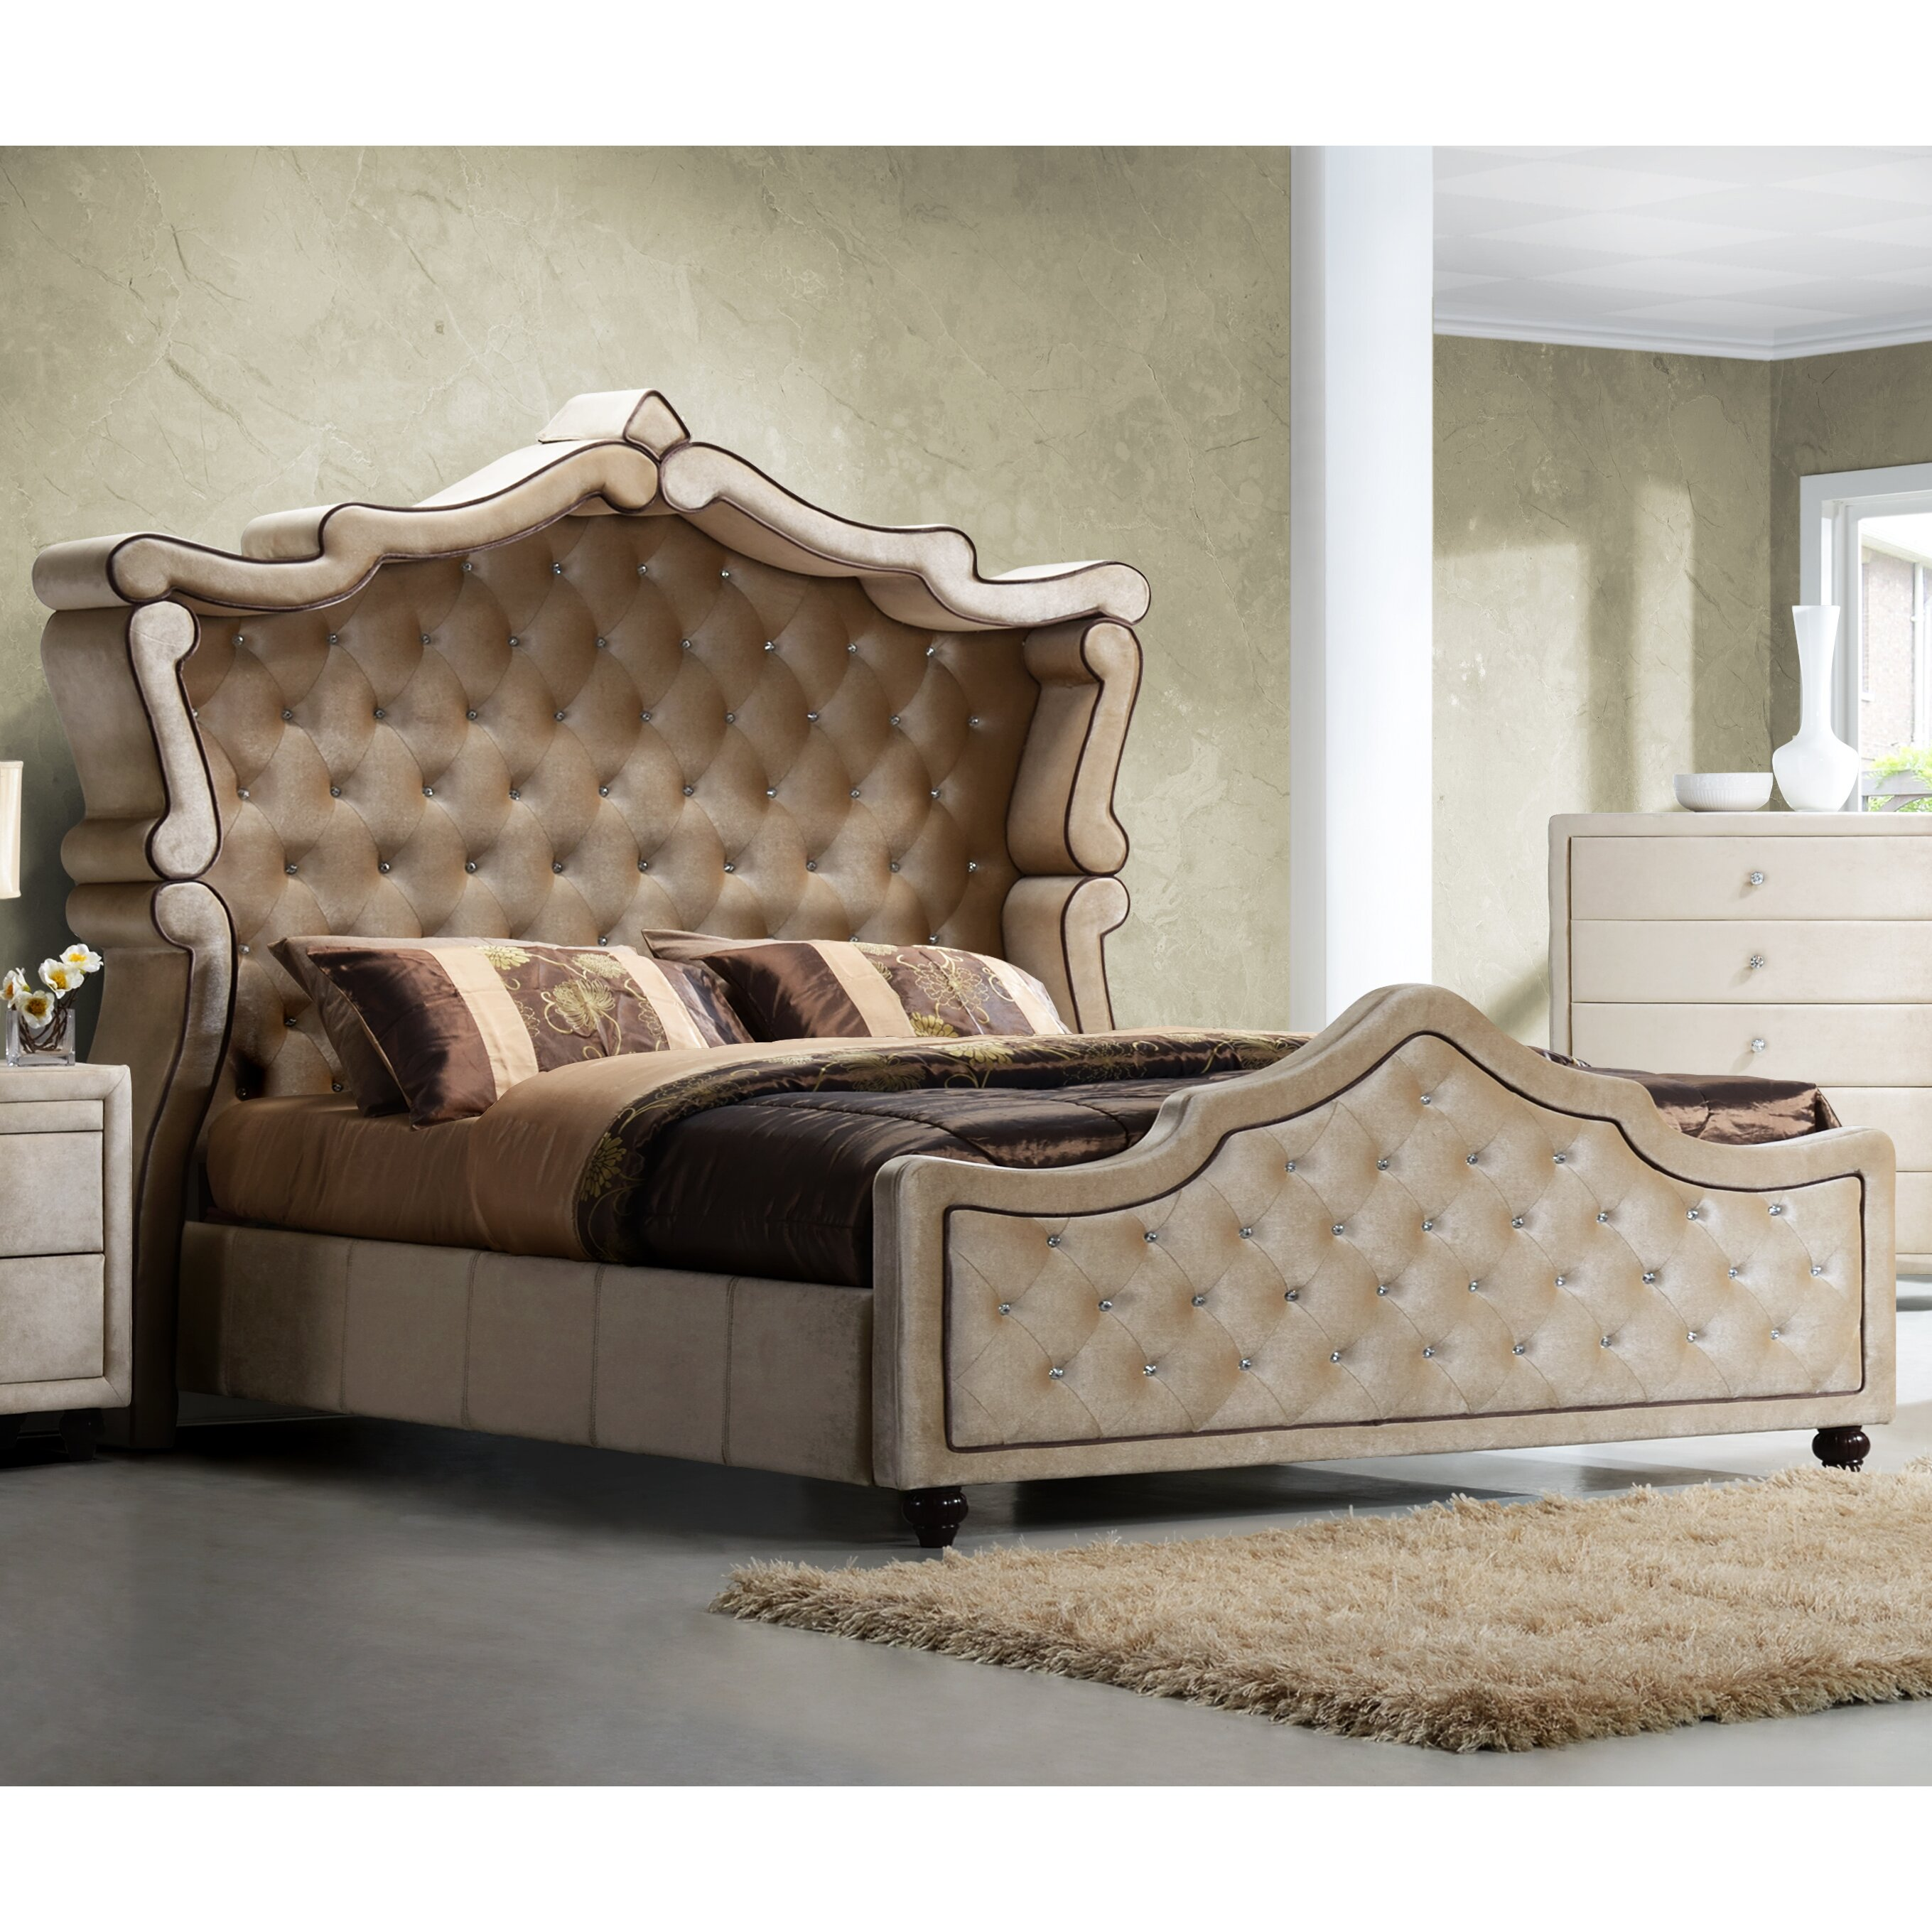 Meridian Bedroom Furniture Meridian Furniture Usa Diamond Upholstered Panel Bed Reviews